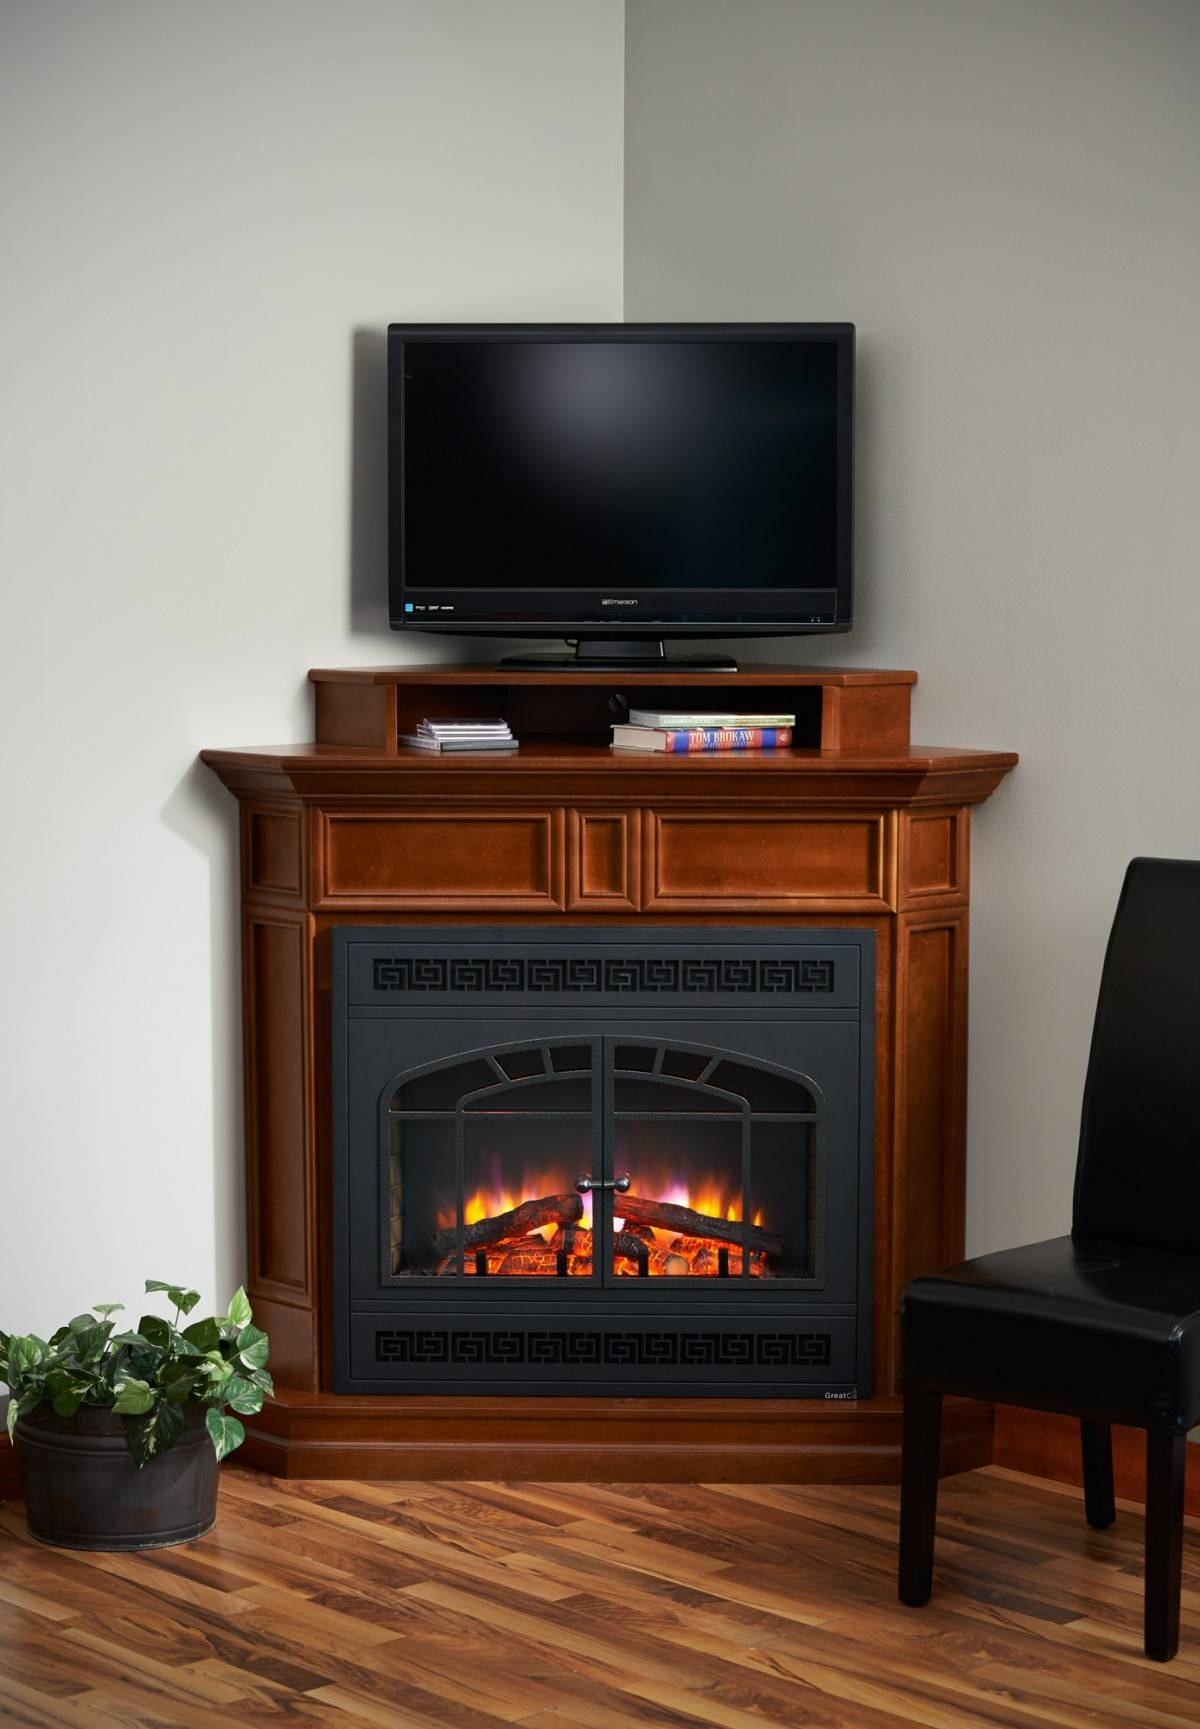 Wooden Corner Tv Stand With Fireplace – Decofurnish With Regard To Cornet Tv Stands (View 15 of 15)